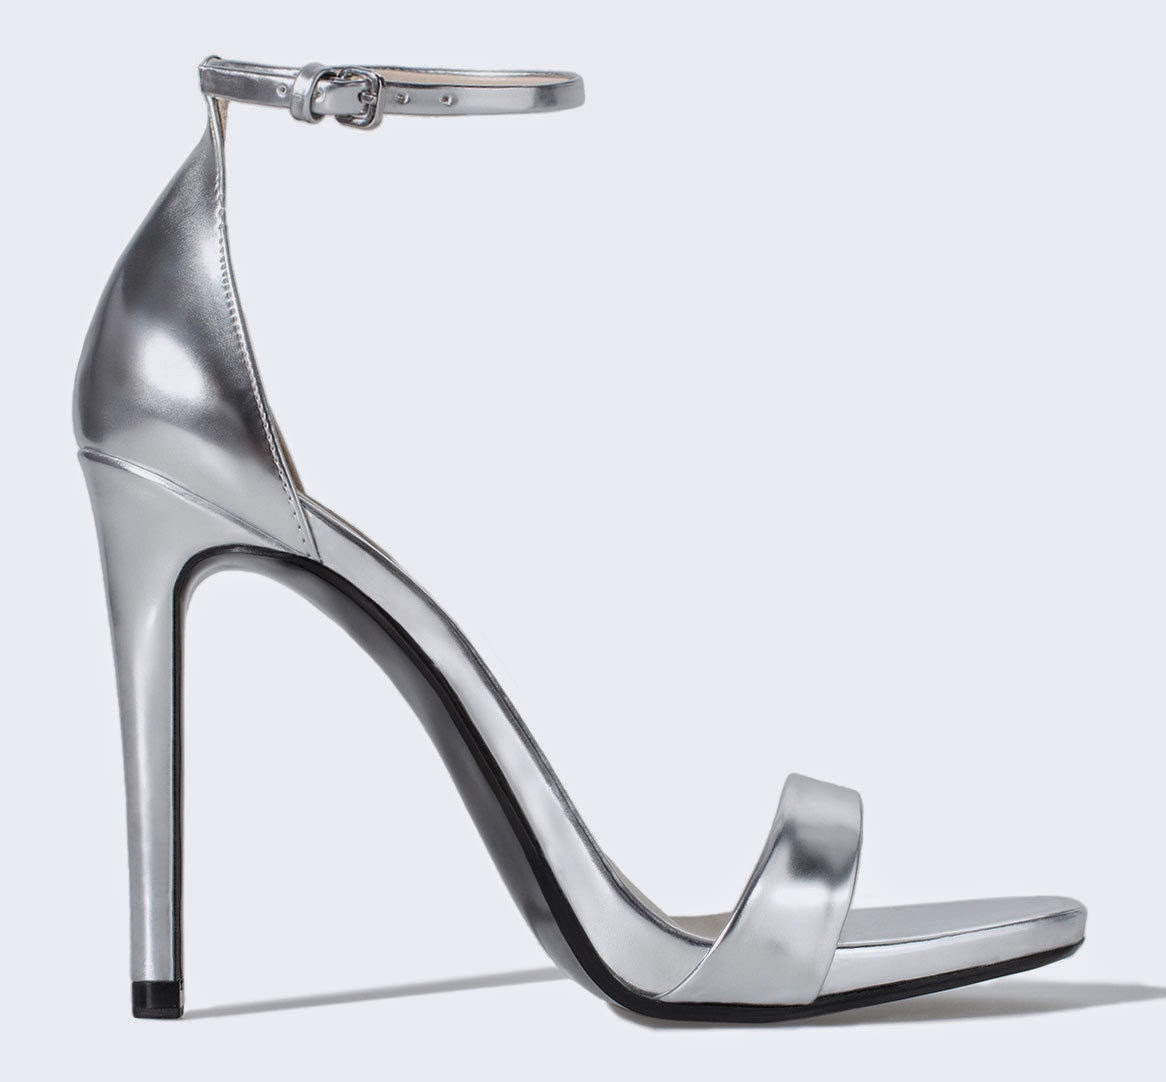 Zara metallic shoes price and pictures